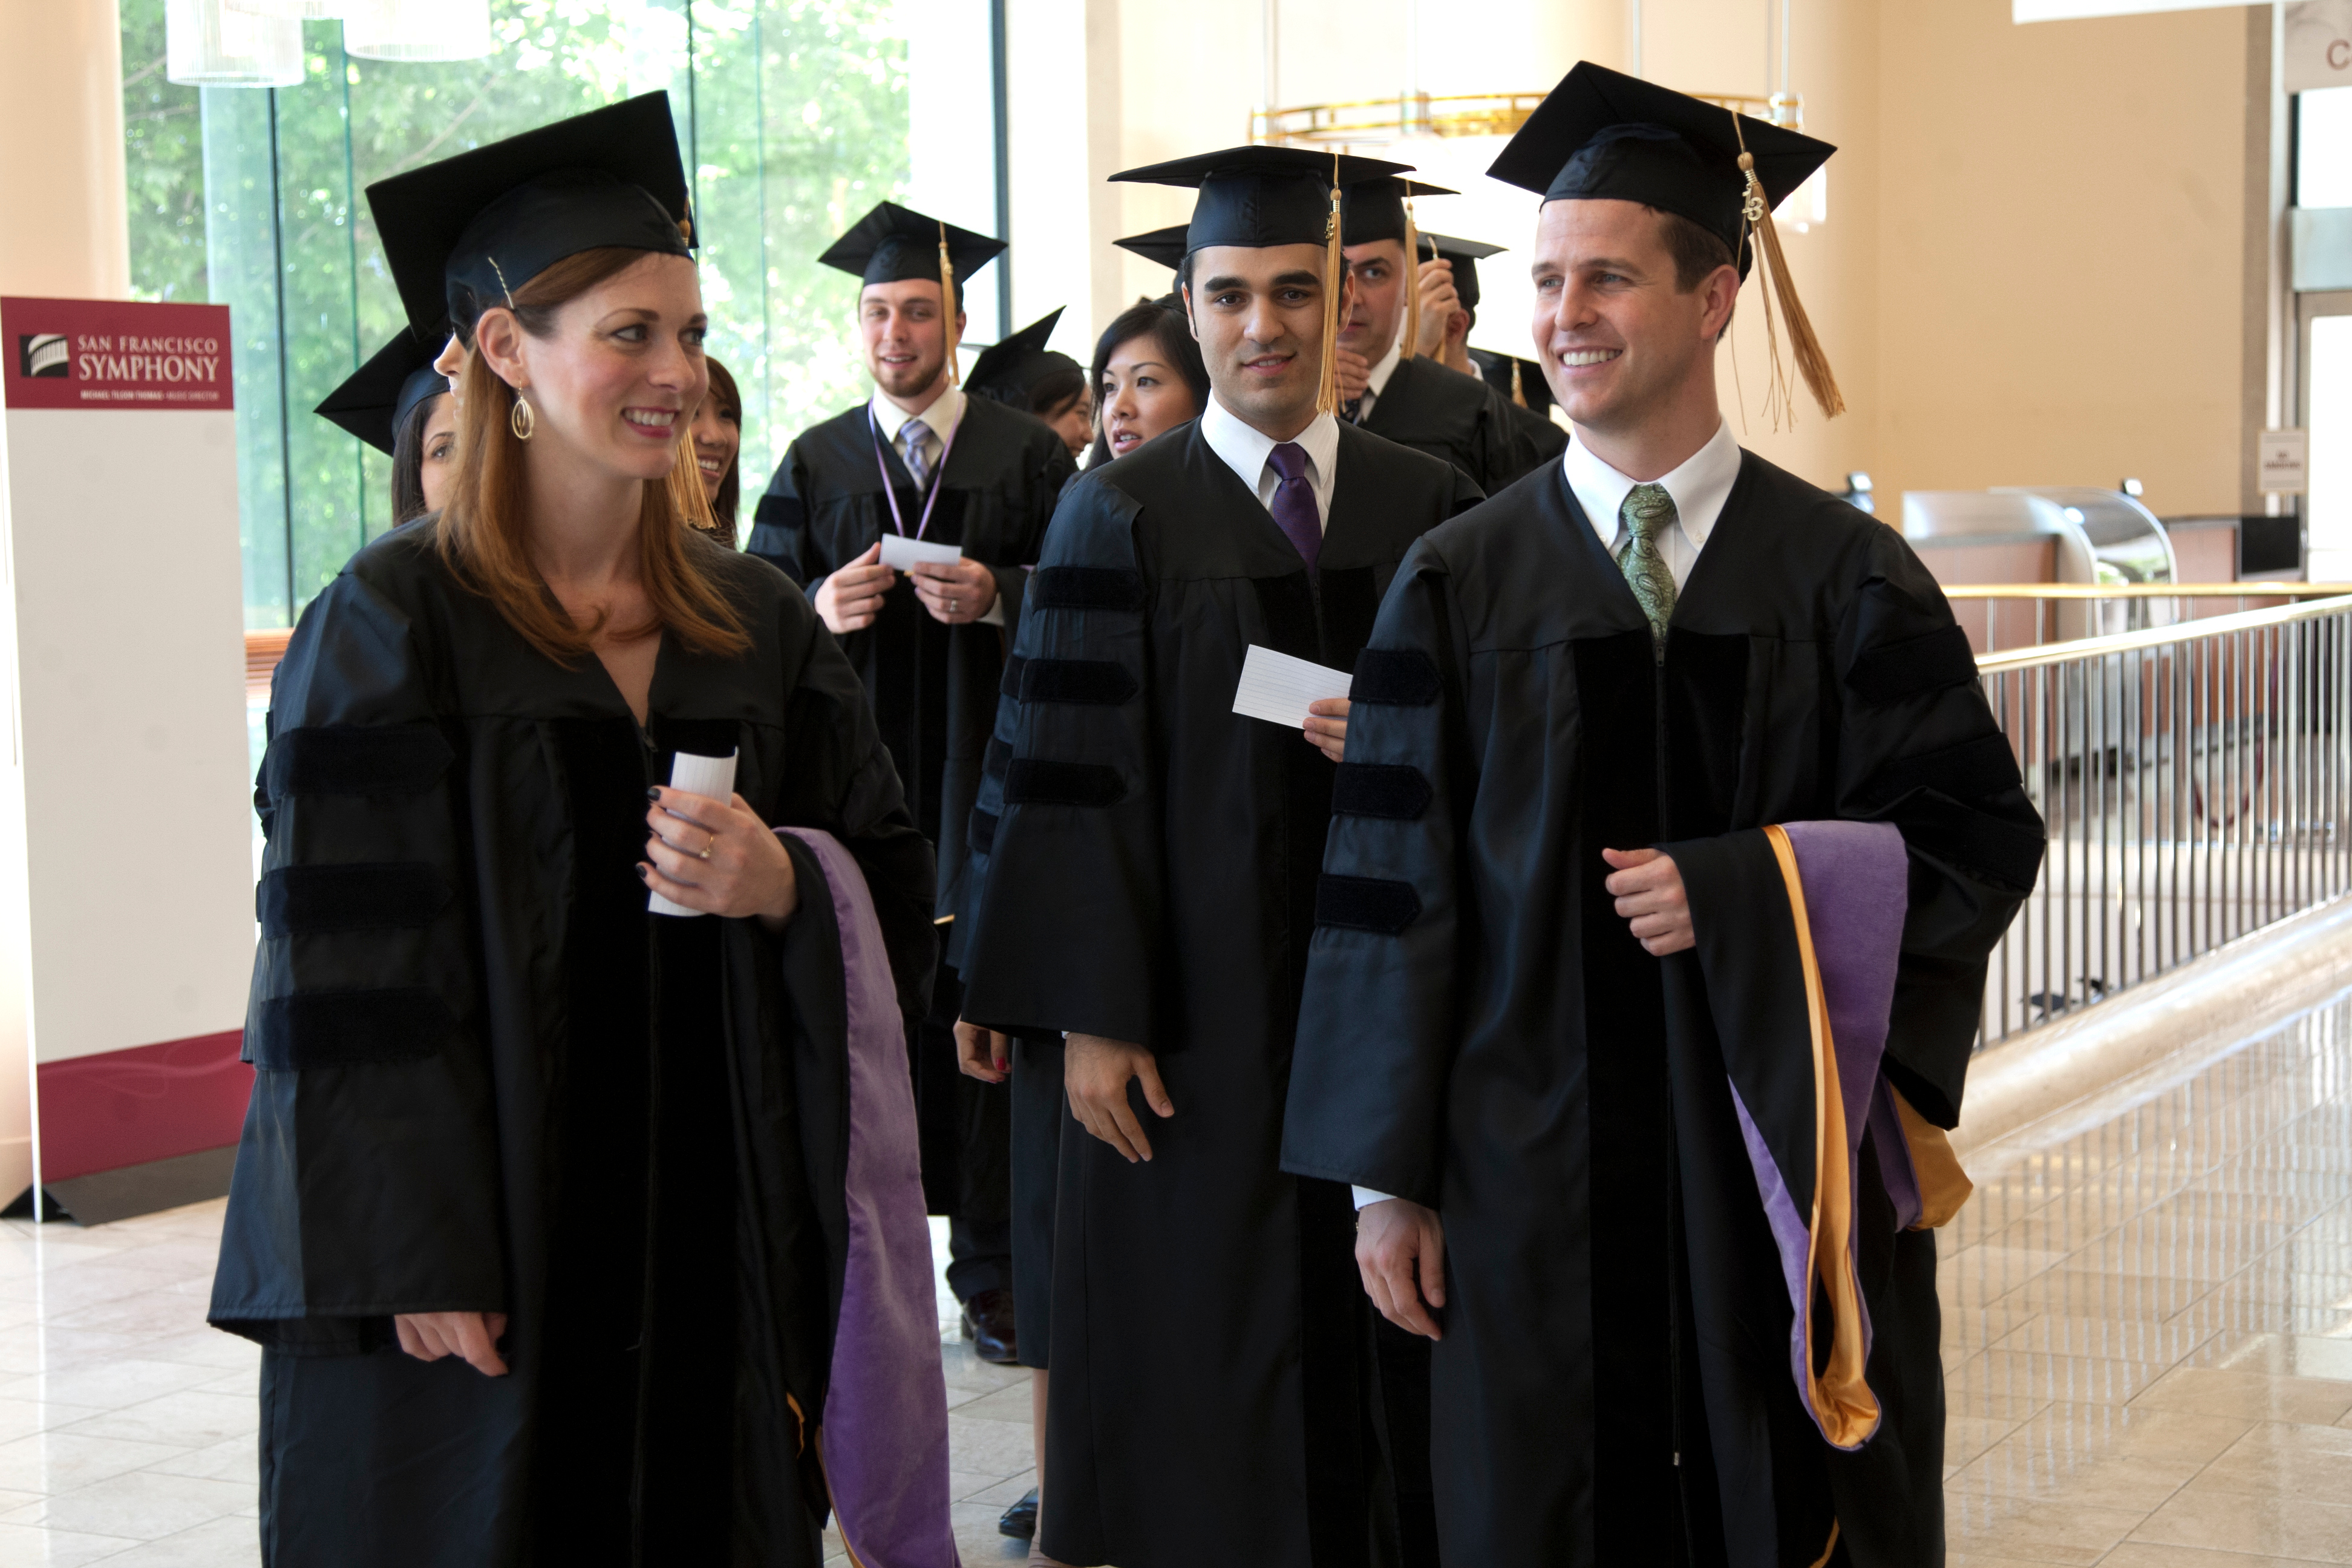 Dental students show their excitement in the final moments before heading into the hall to receive their diplomas.